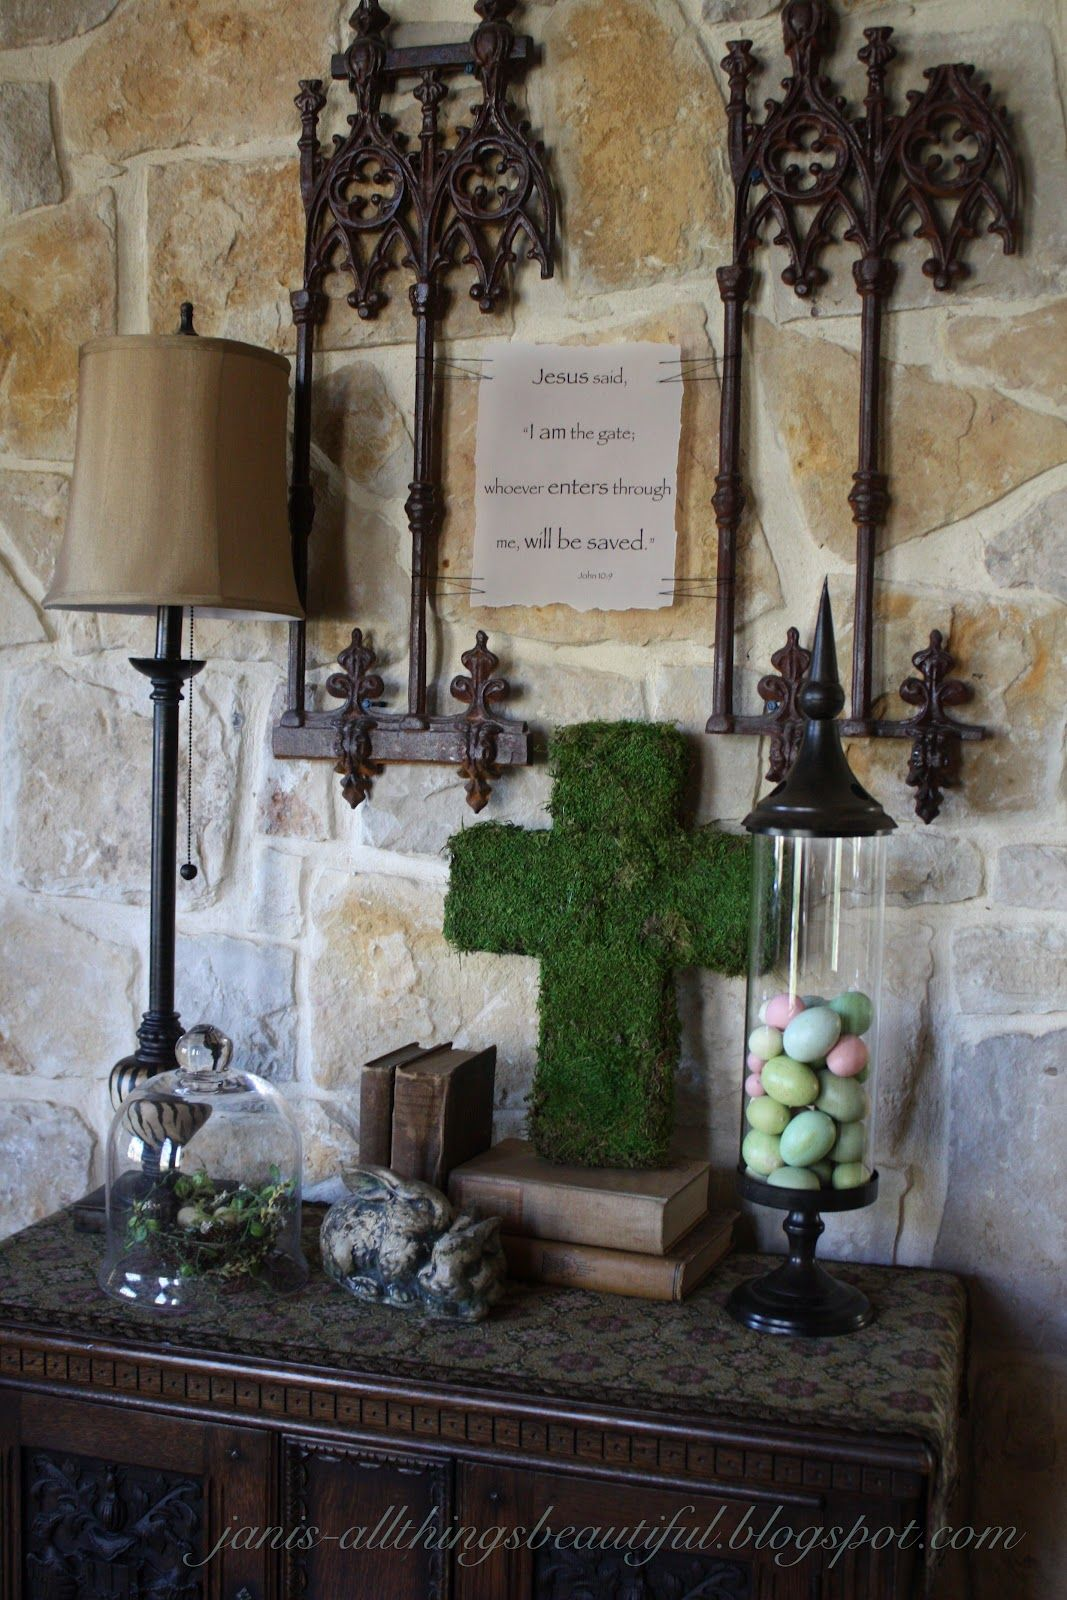 Christian easter decor - All Things Beautiful Moss Cross Diy Spring Entryway Decor Christian Eastereaster